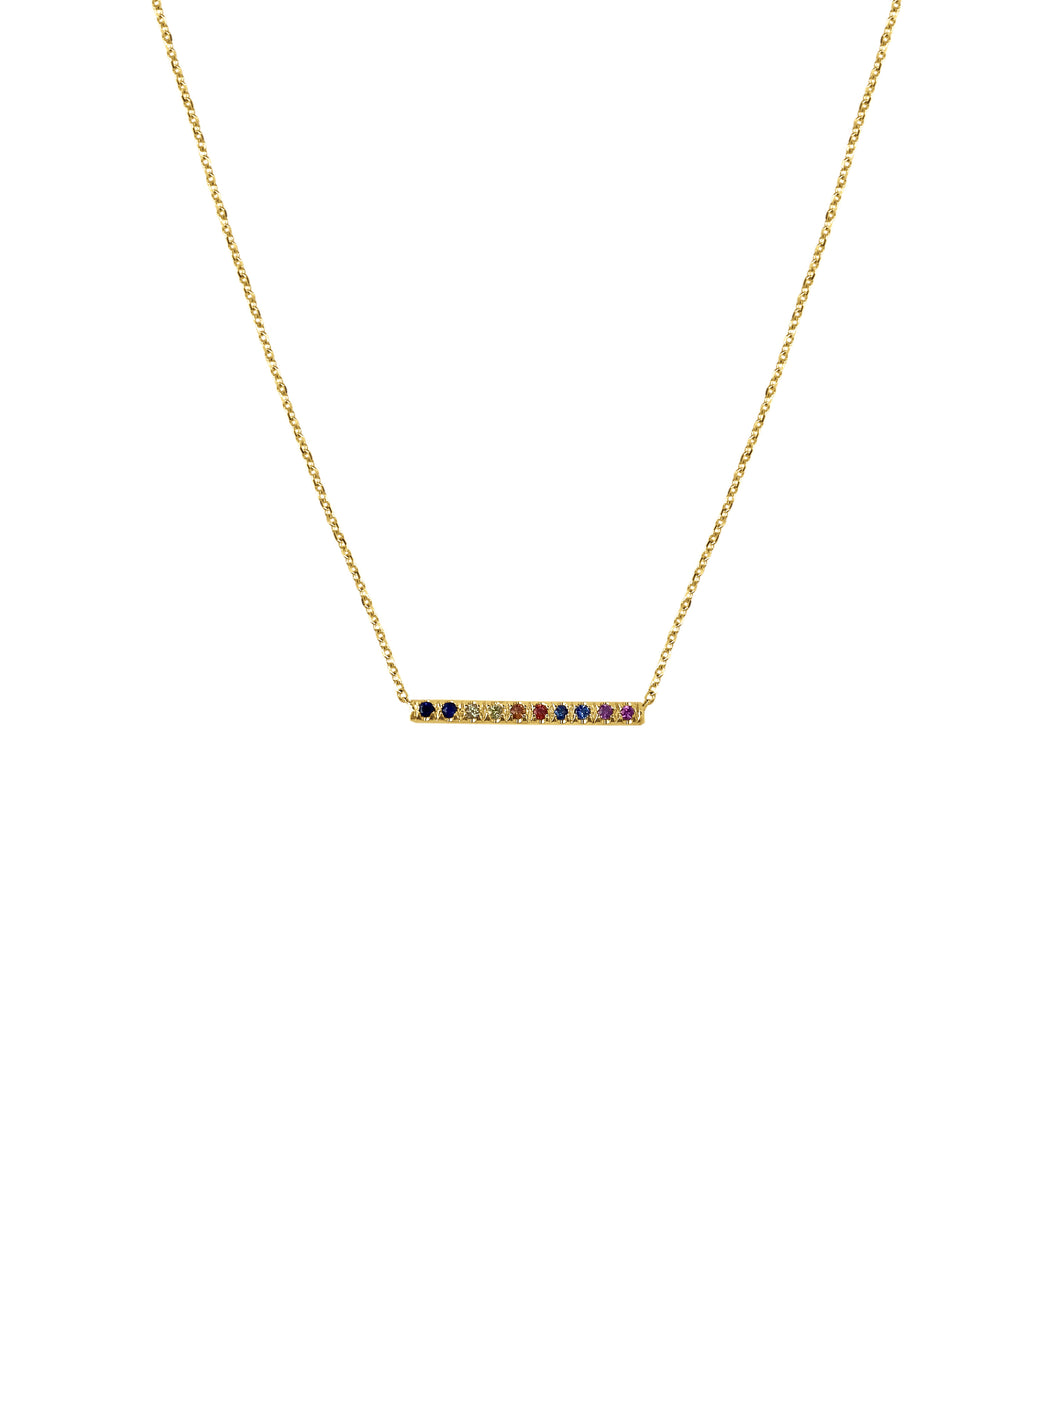 14K Gold Mini Micropave Sapphire Bar Necklace